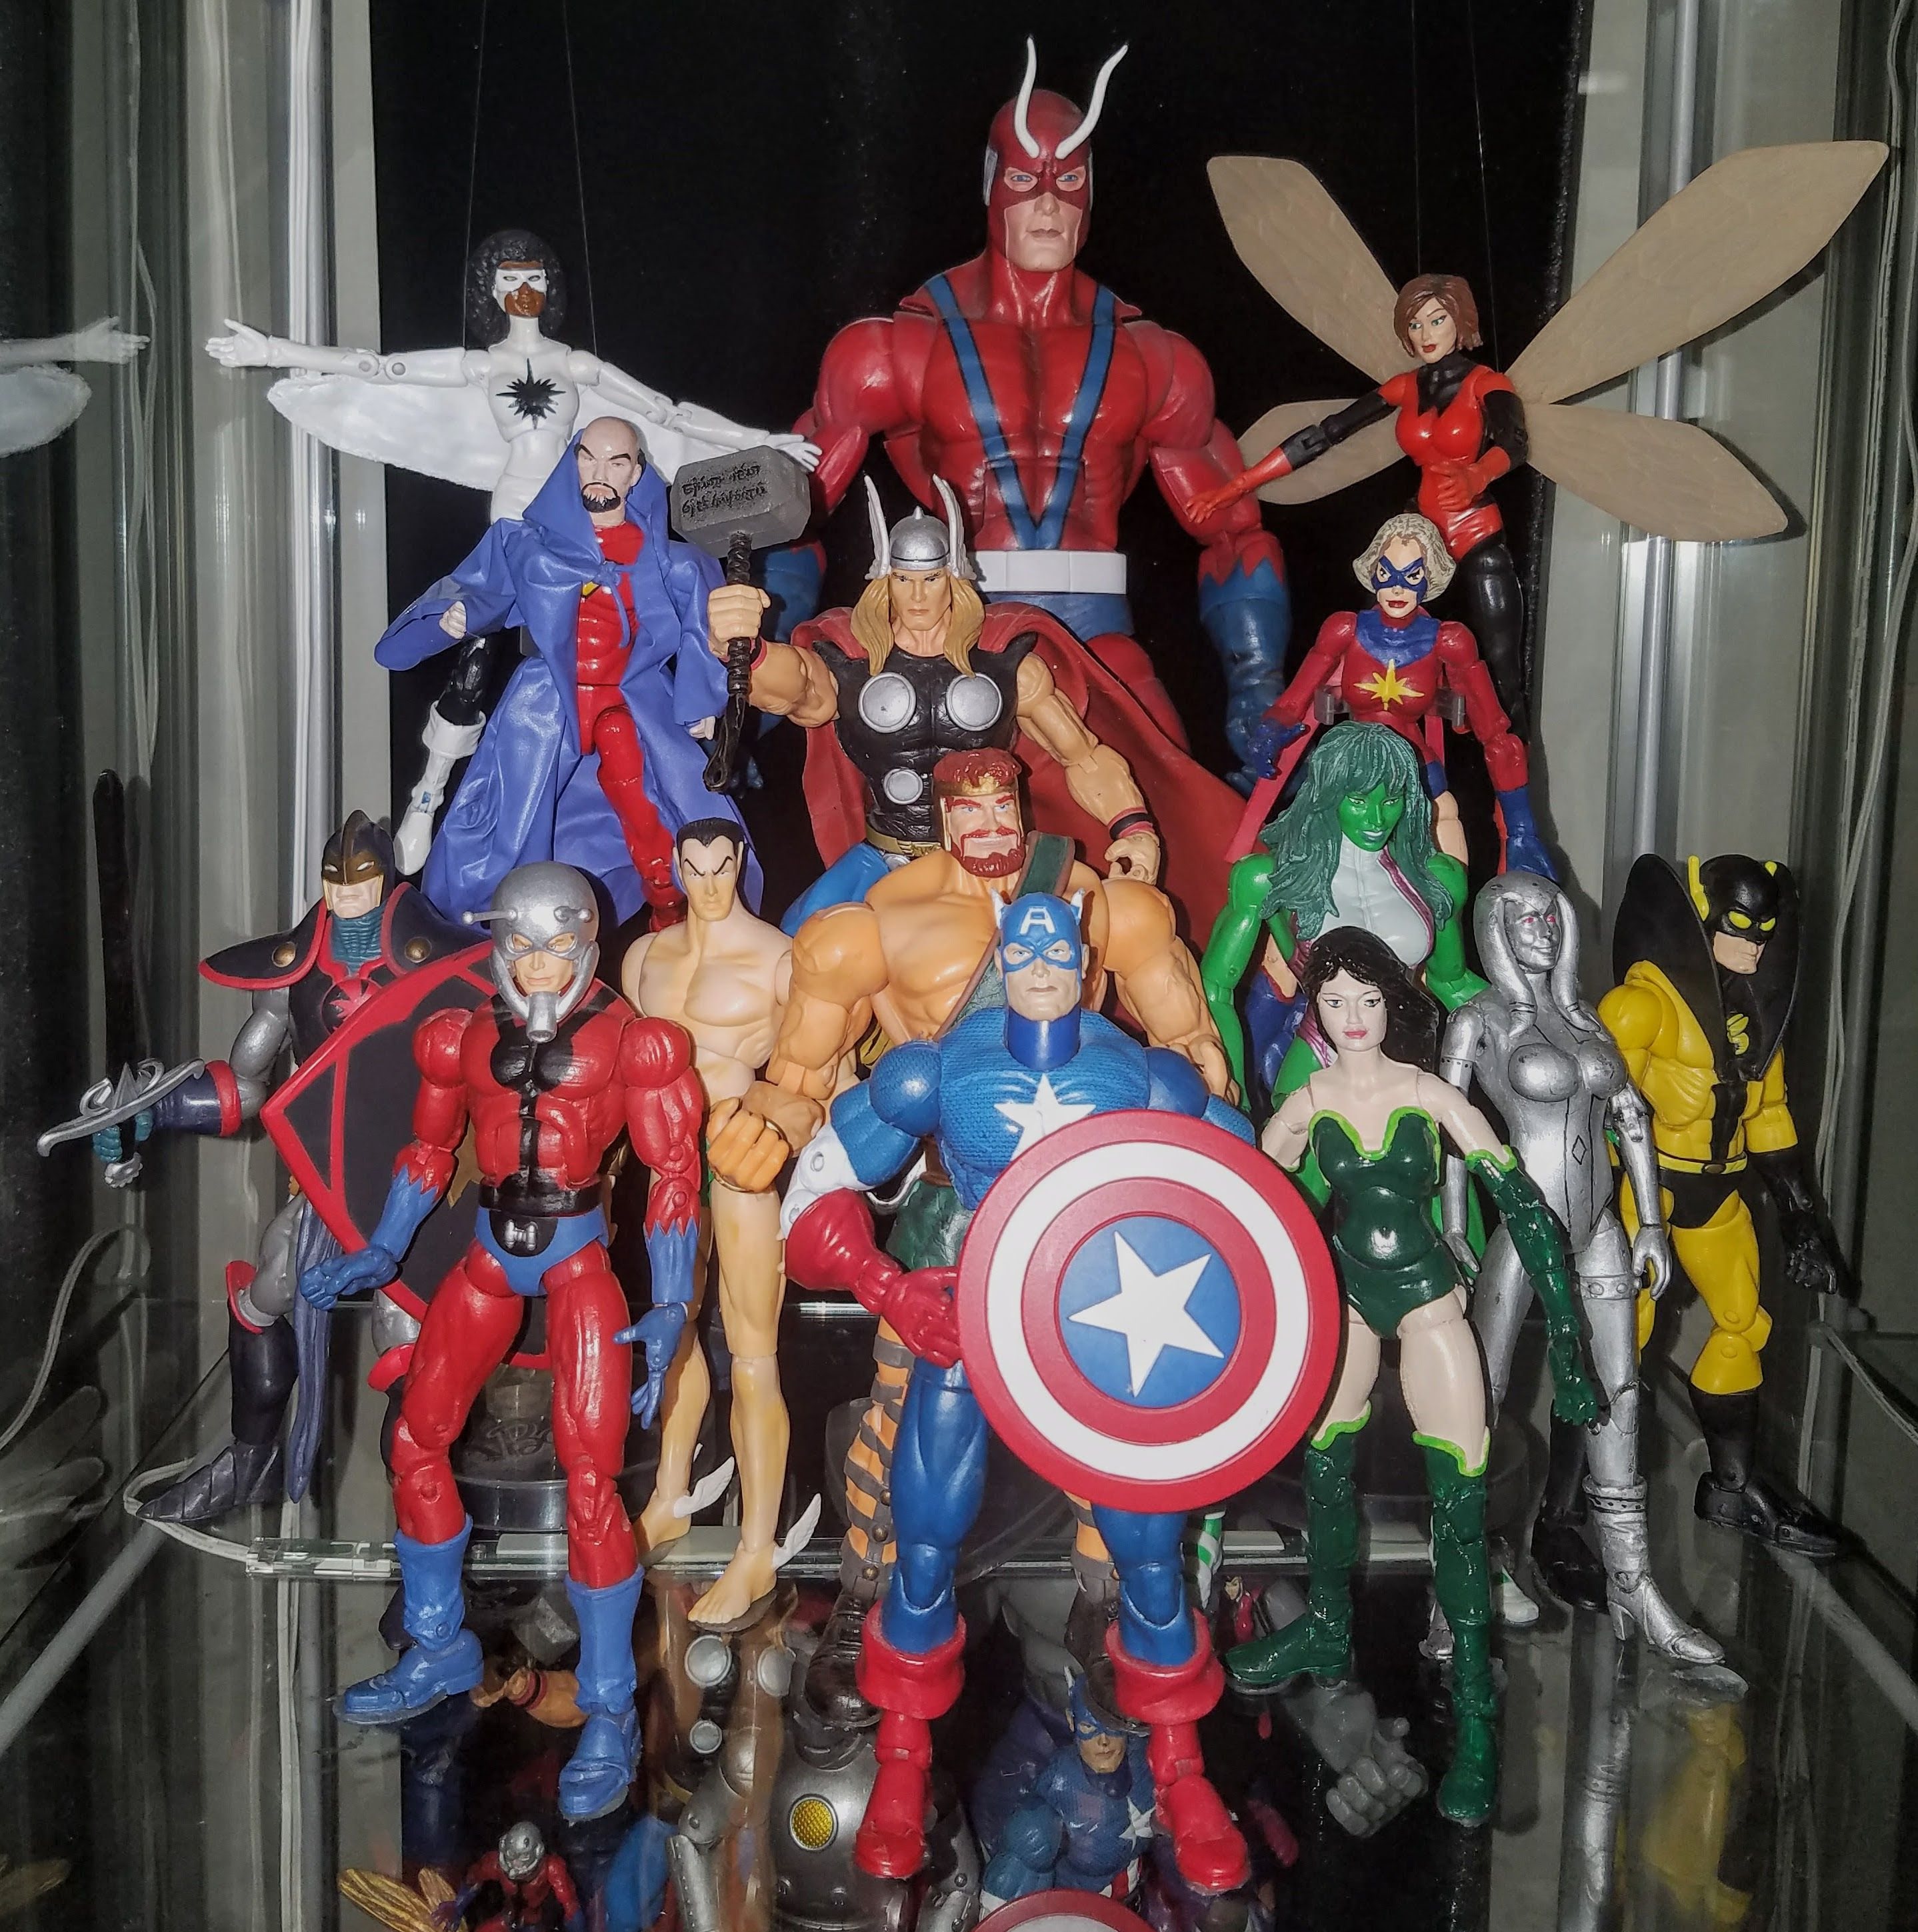 Avengers 1970s prodigeeks action figure collection